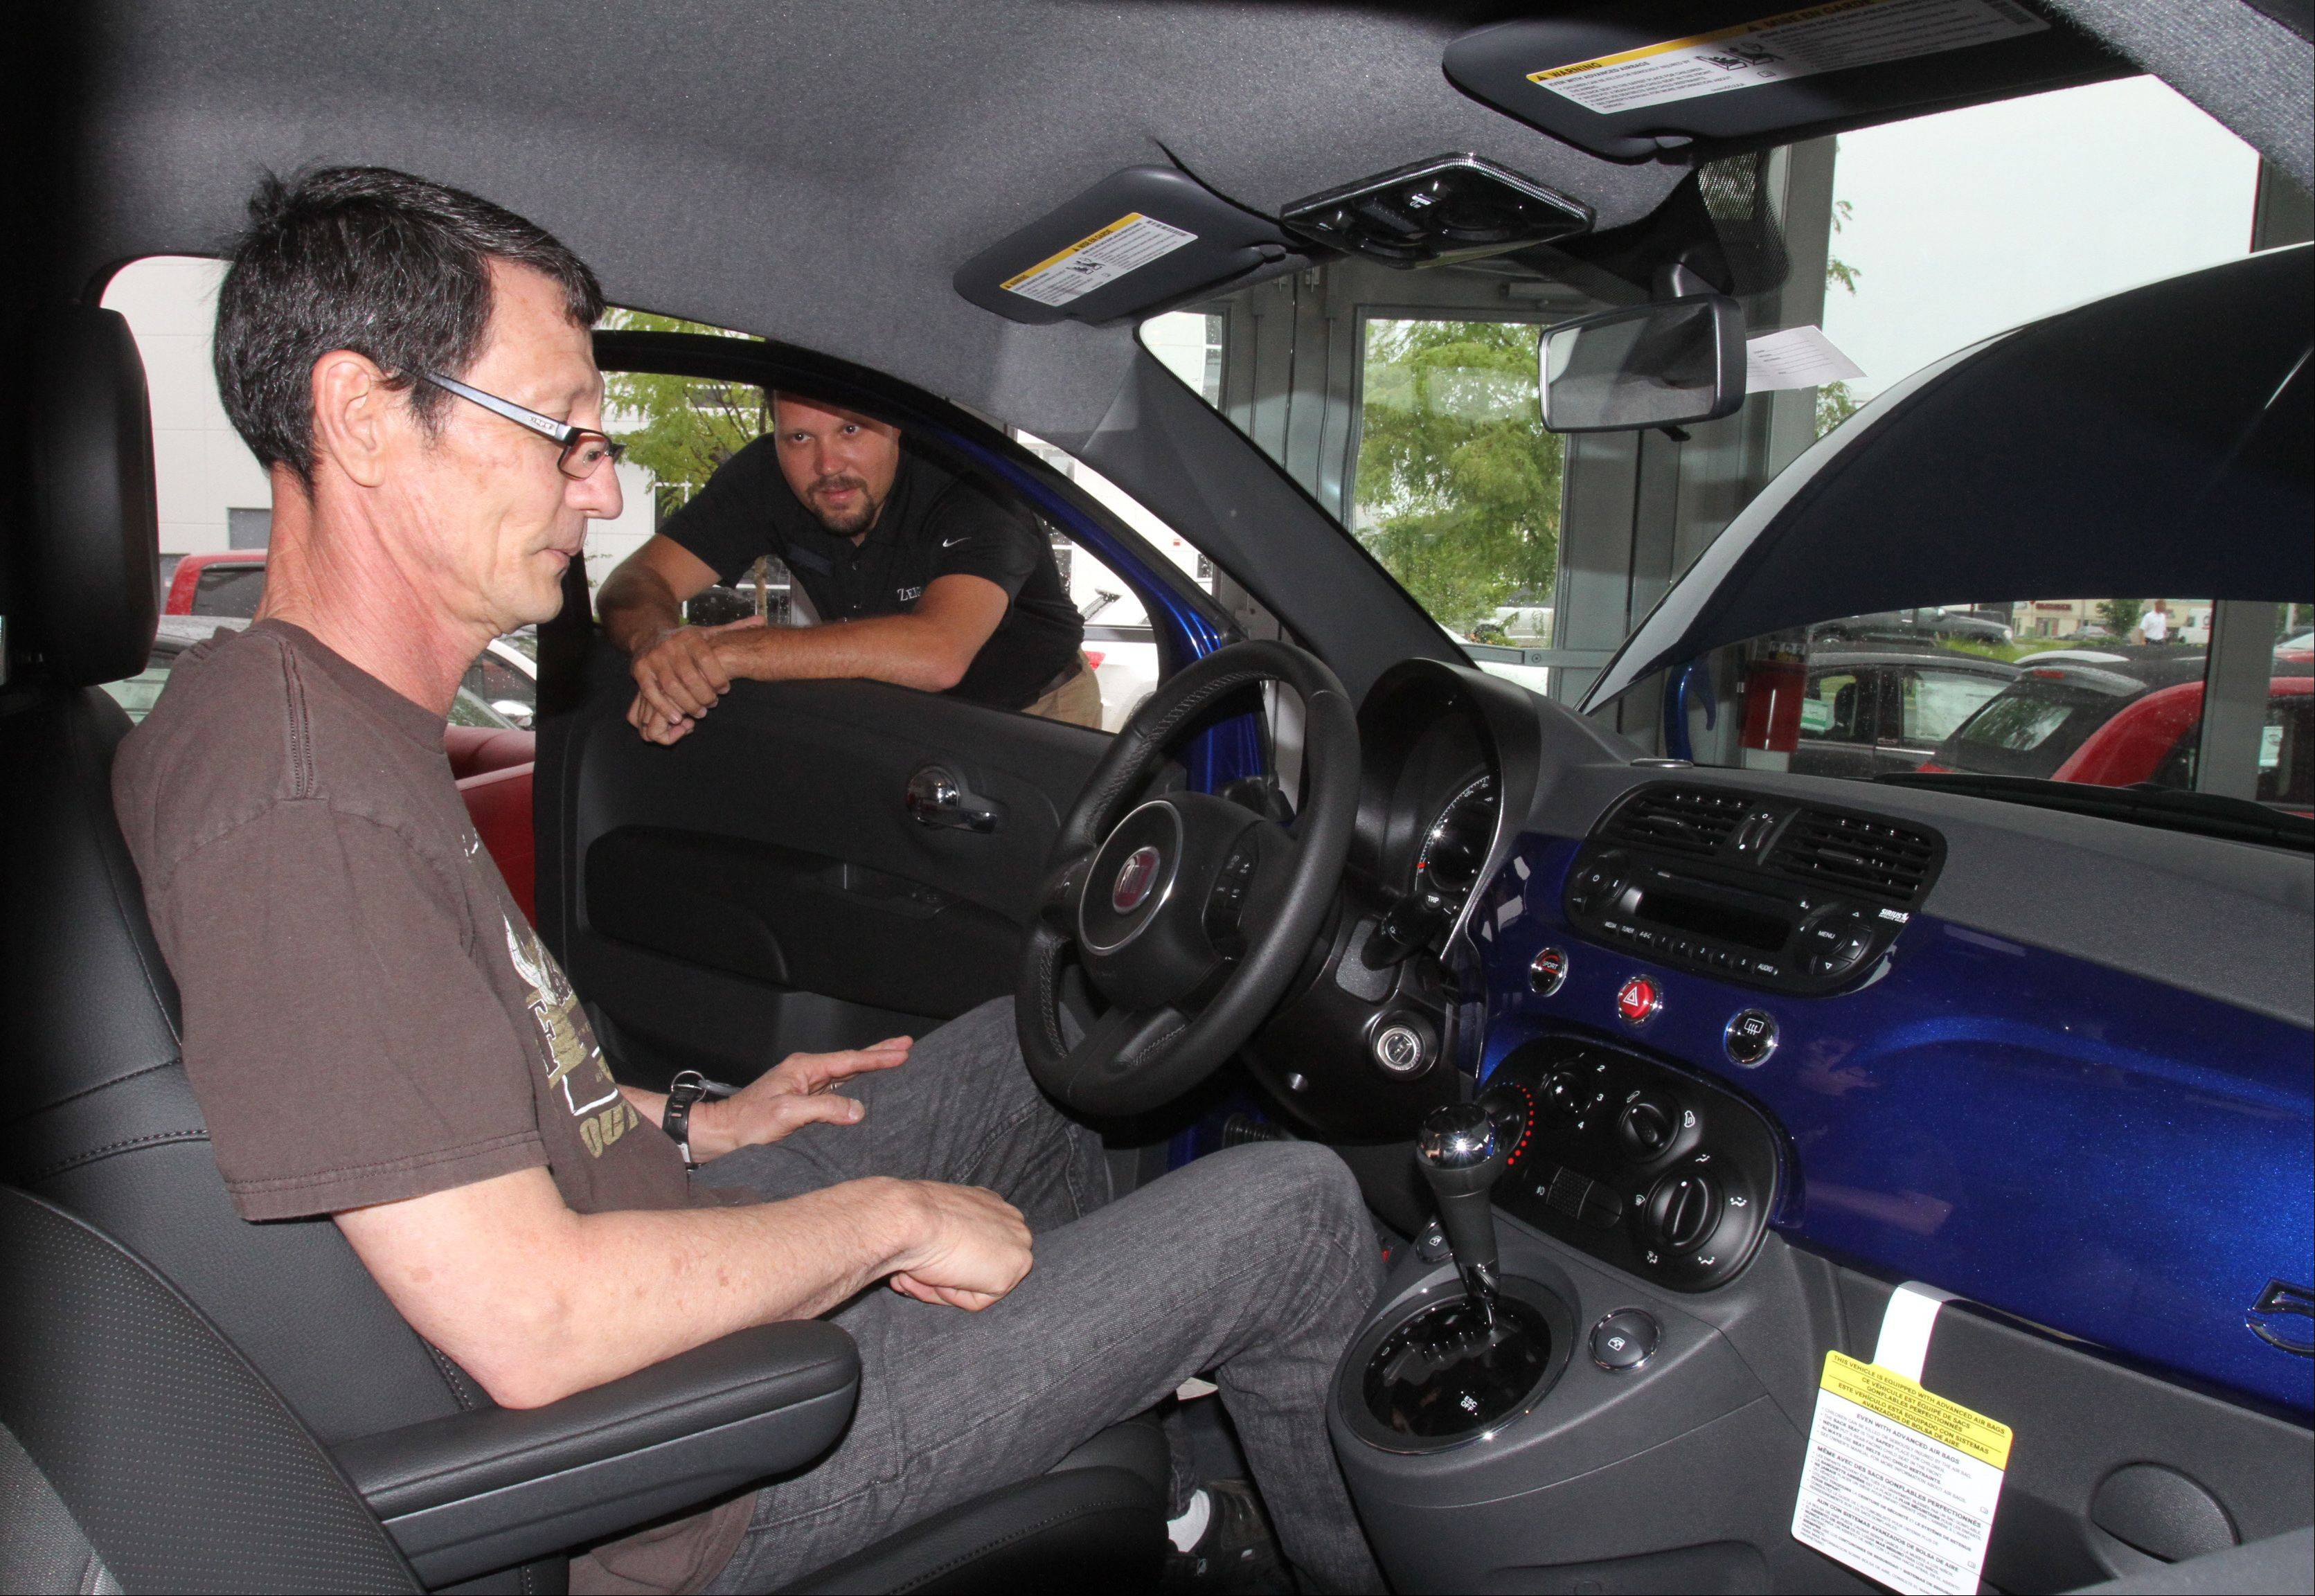 Jeff Nemcher, sales associate at Zeigler Chrysler Dodge Jeep, shows Wesley Hawk of Bartlett the 2012 Fiat 500 Sport car in the dealership's showroom in Schaumburg on Wednesday. The dealership was chosen to help reintroduce the Fiat brand to the U.S. market.